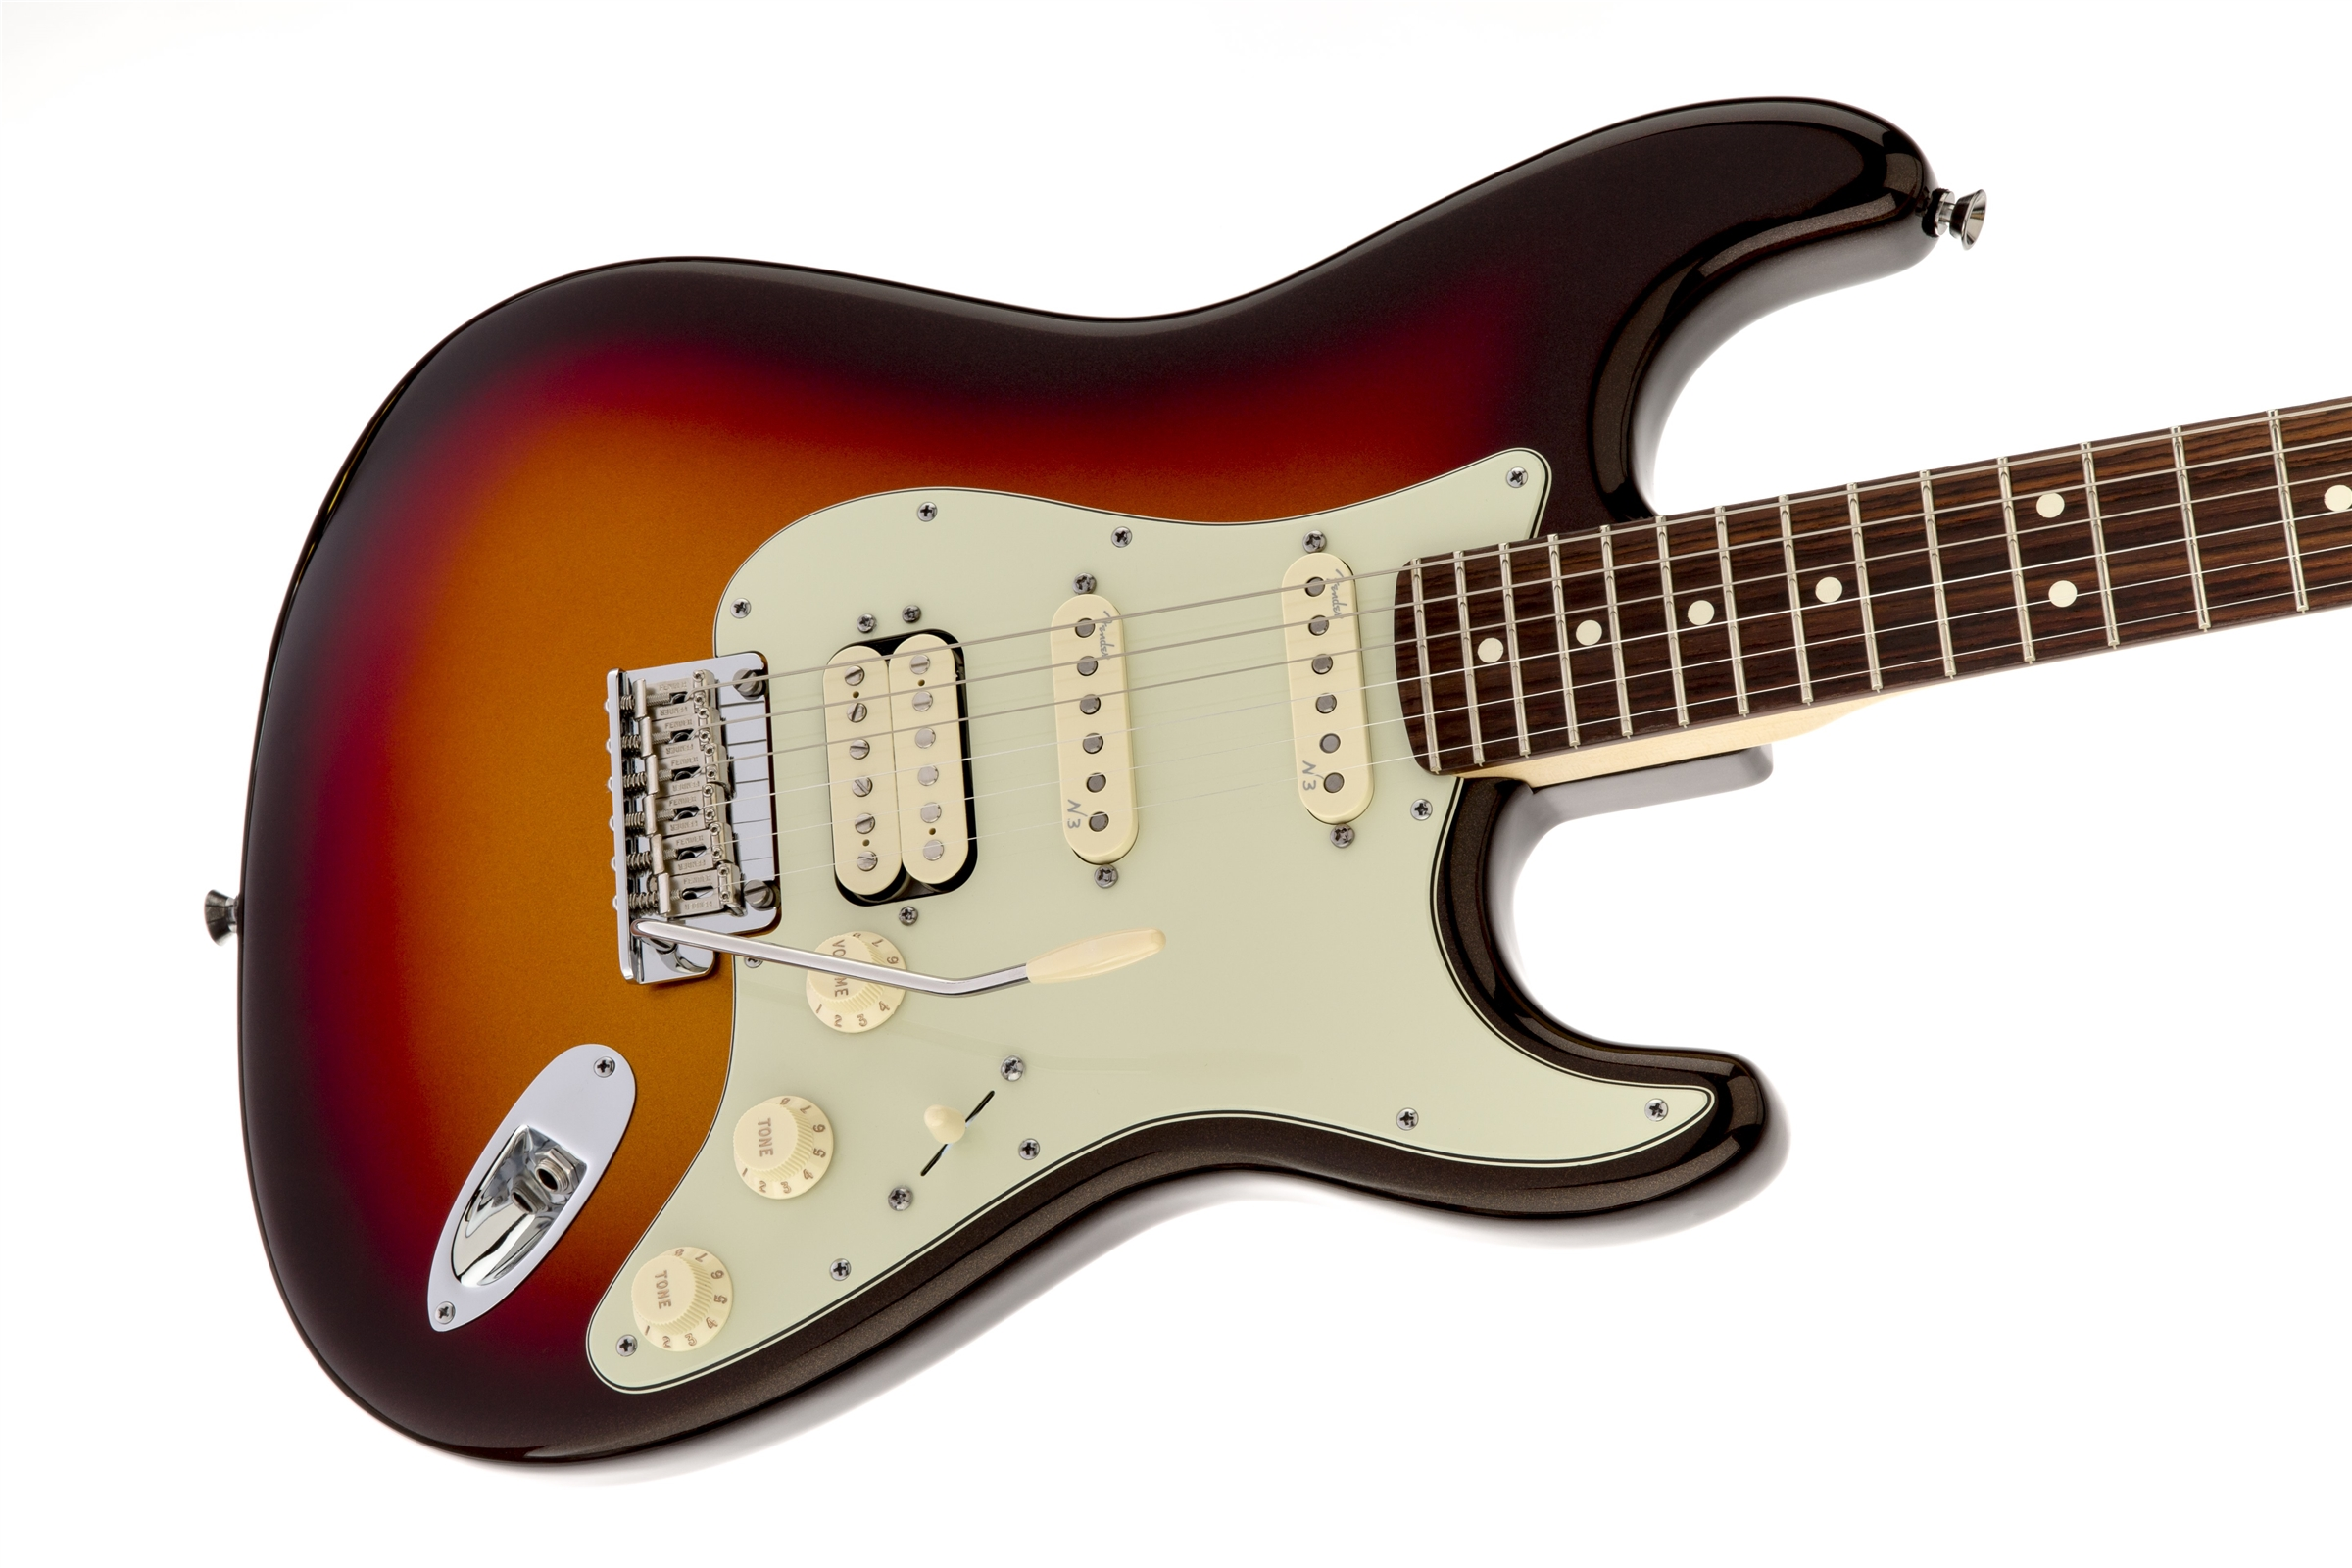 fender stratocaster deluxe hss wiring diagram small boat electrical pepsi machine diagrams soda